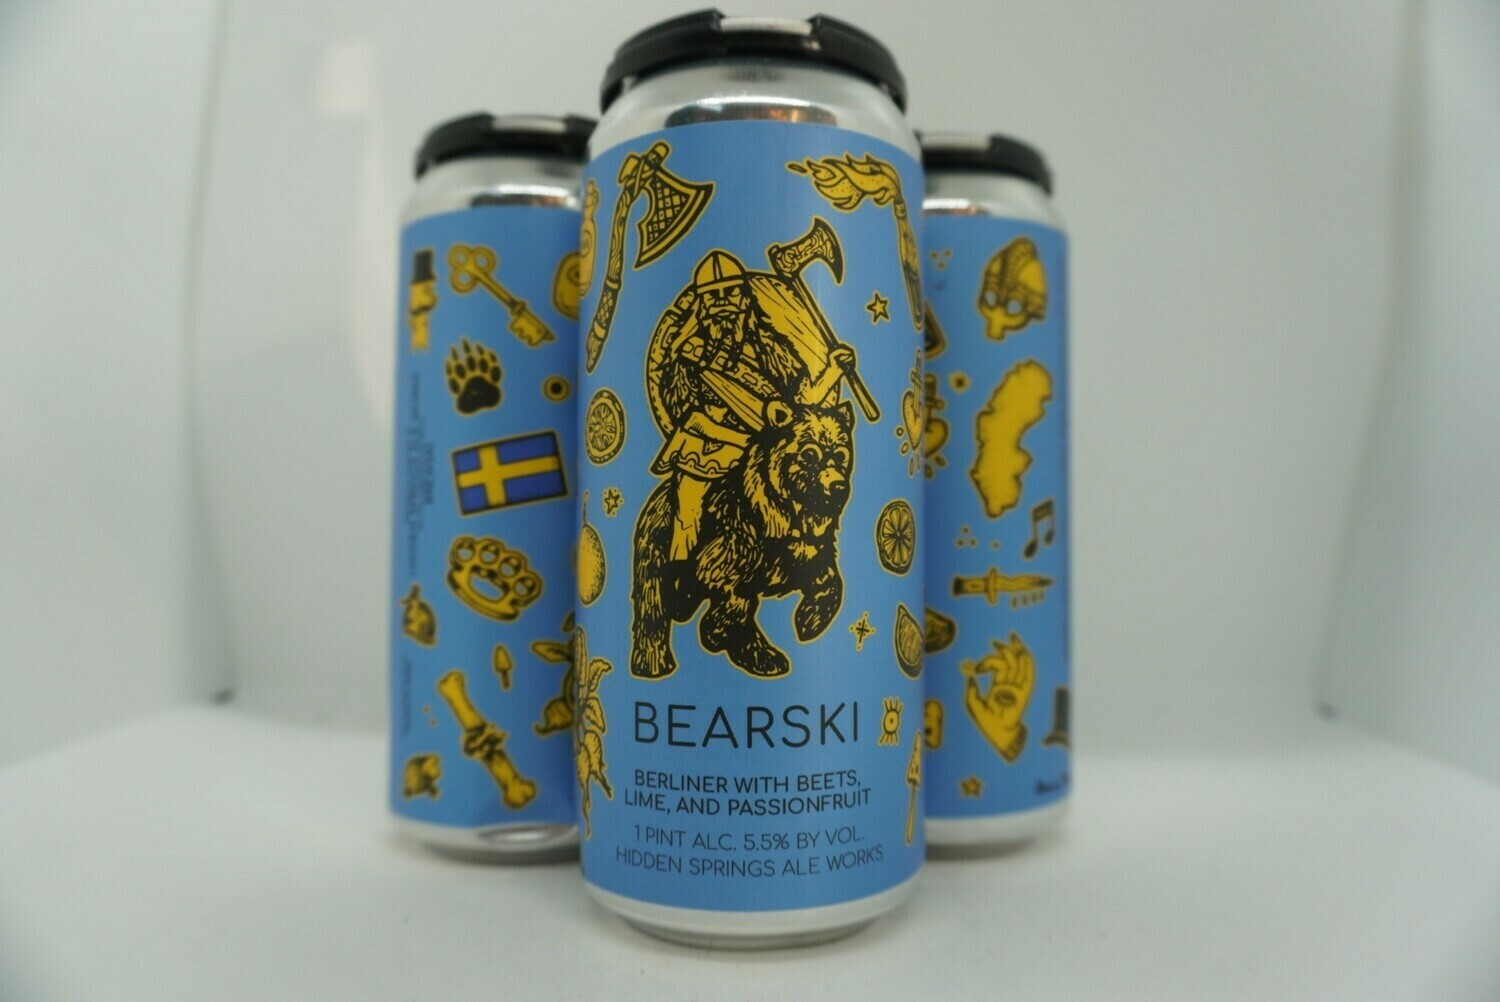 Hidden Springs - Bearski- Sour - 5.5% ABV - 4 Pack